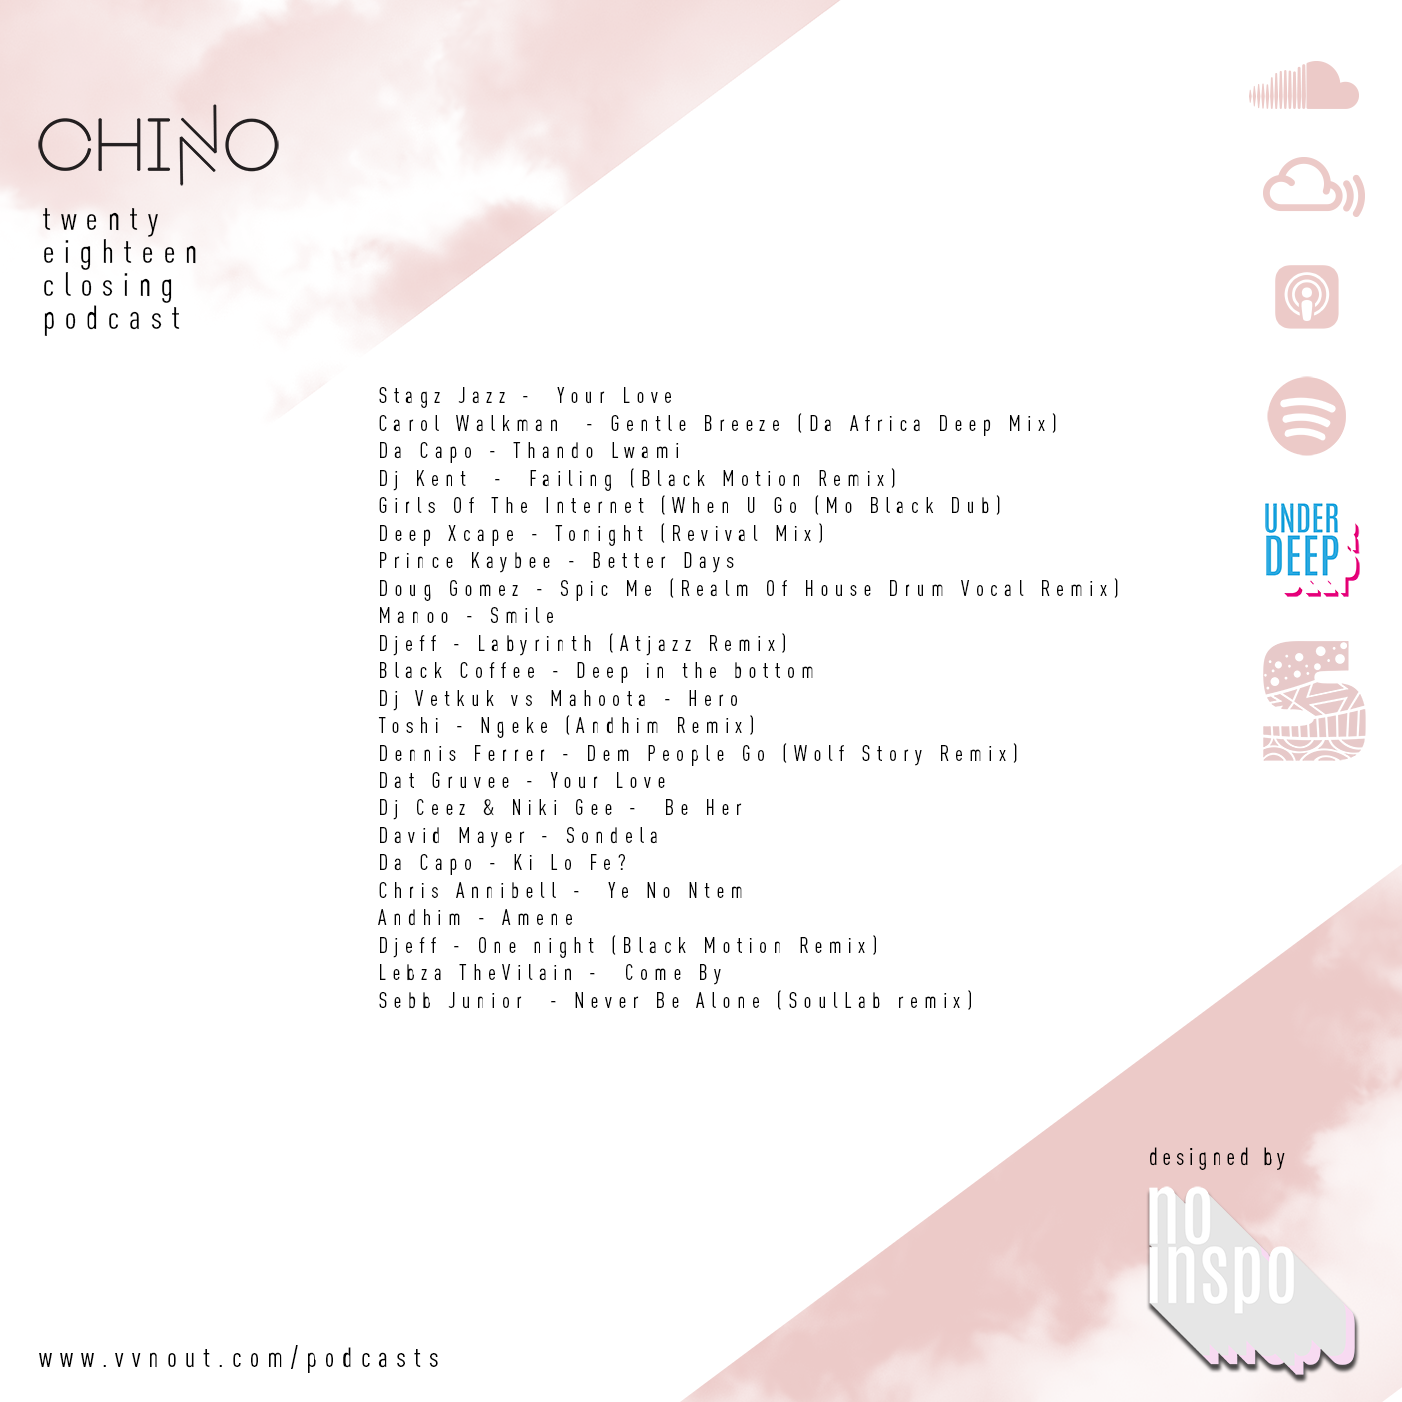 Chino VV - closing podcast 2018 back-low.png